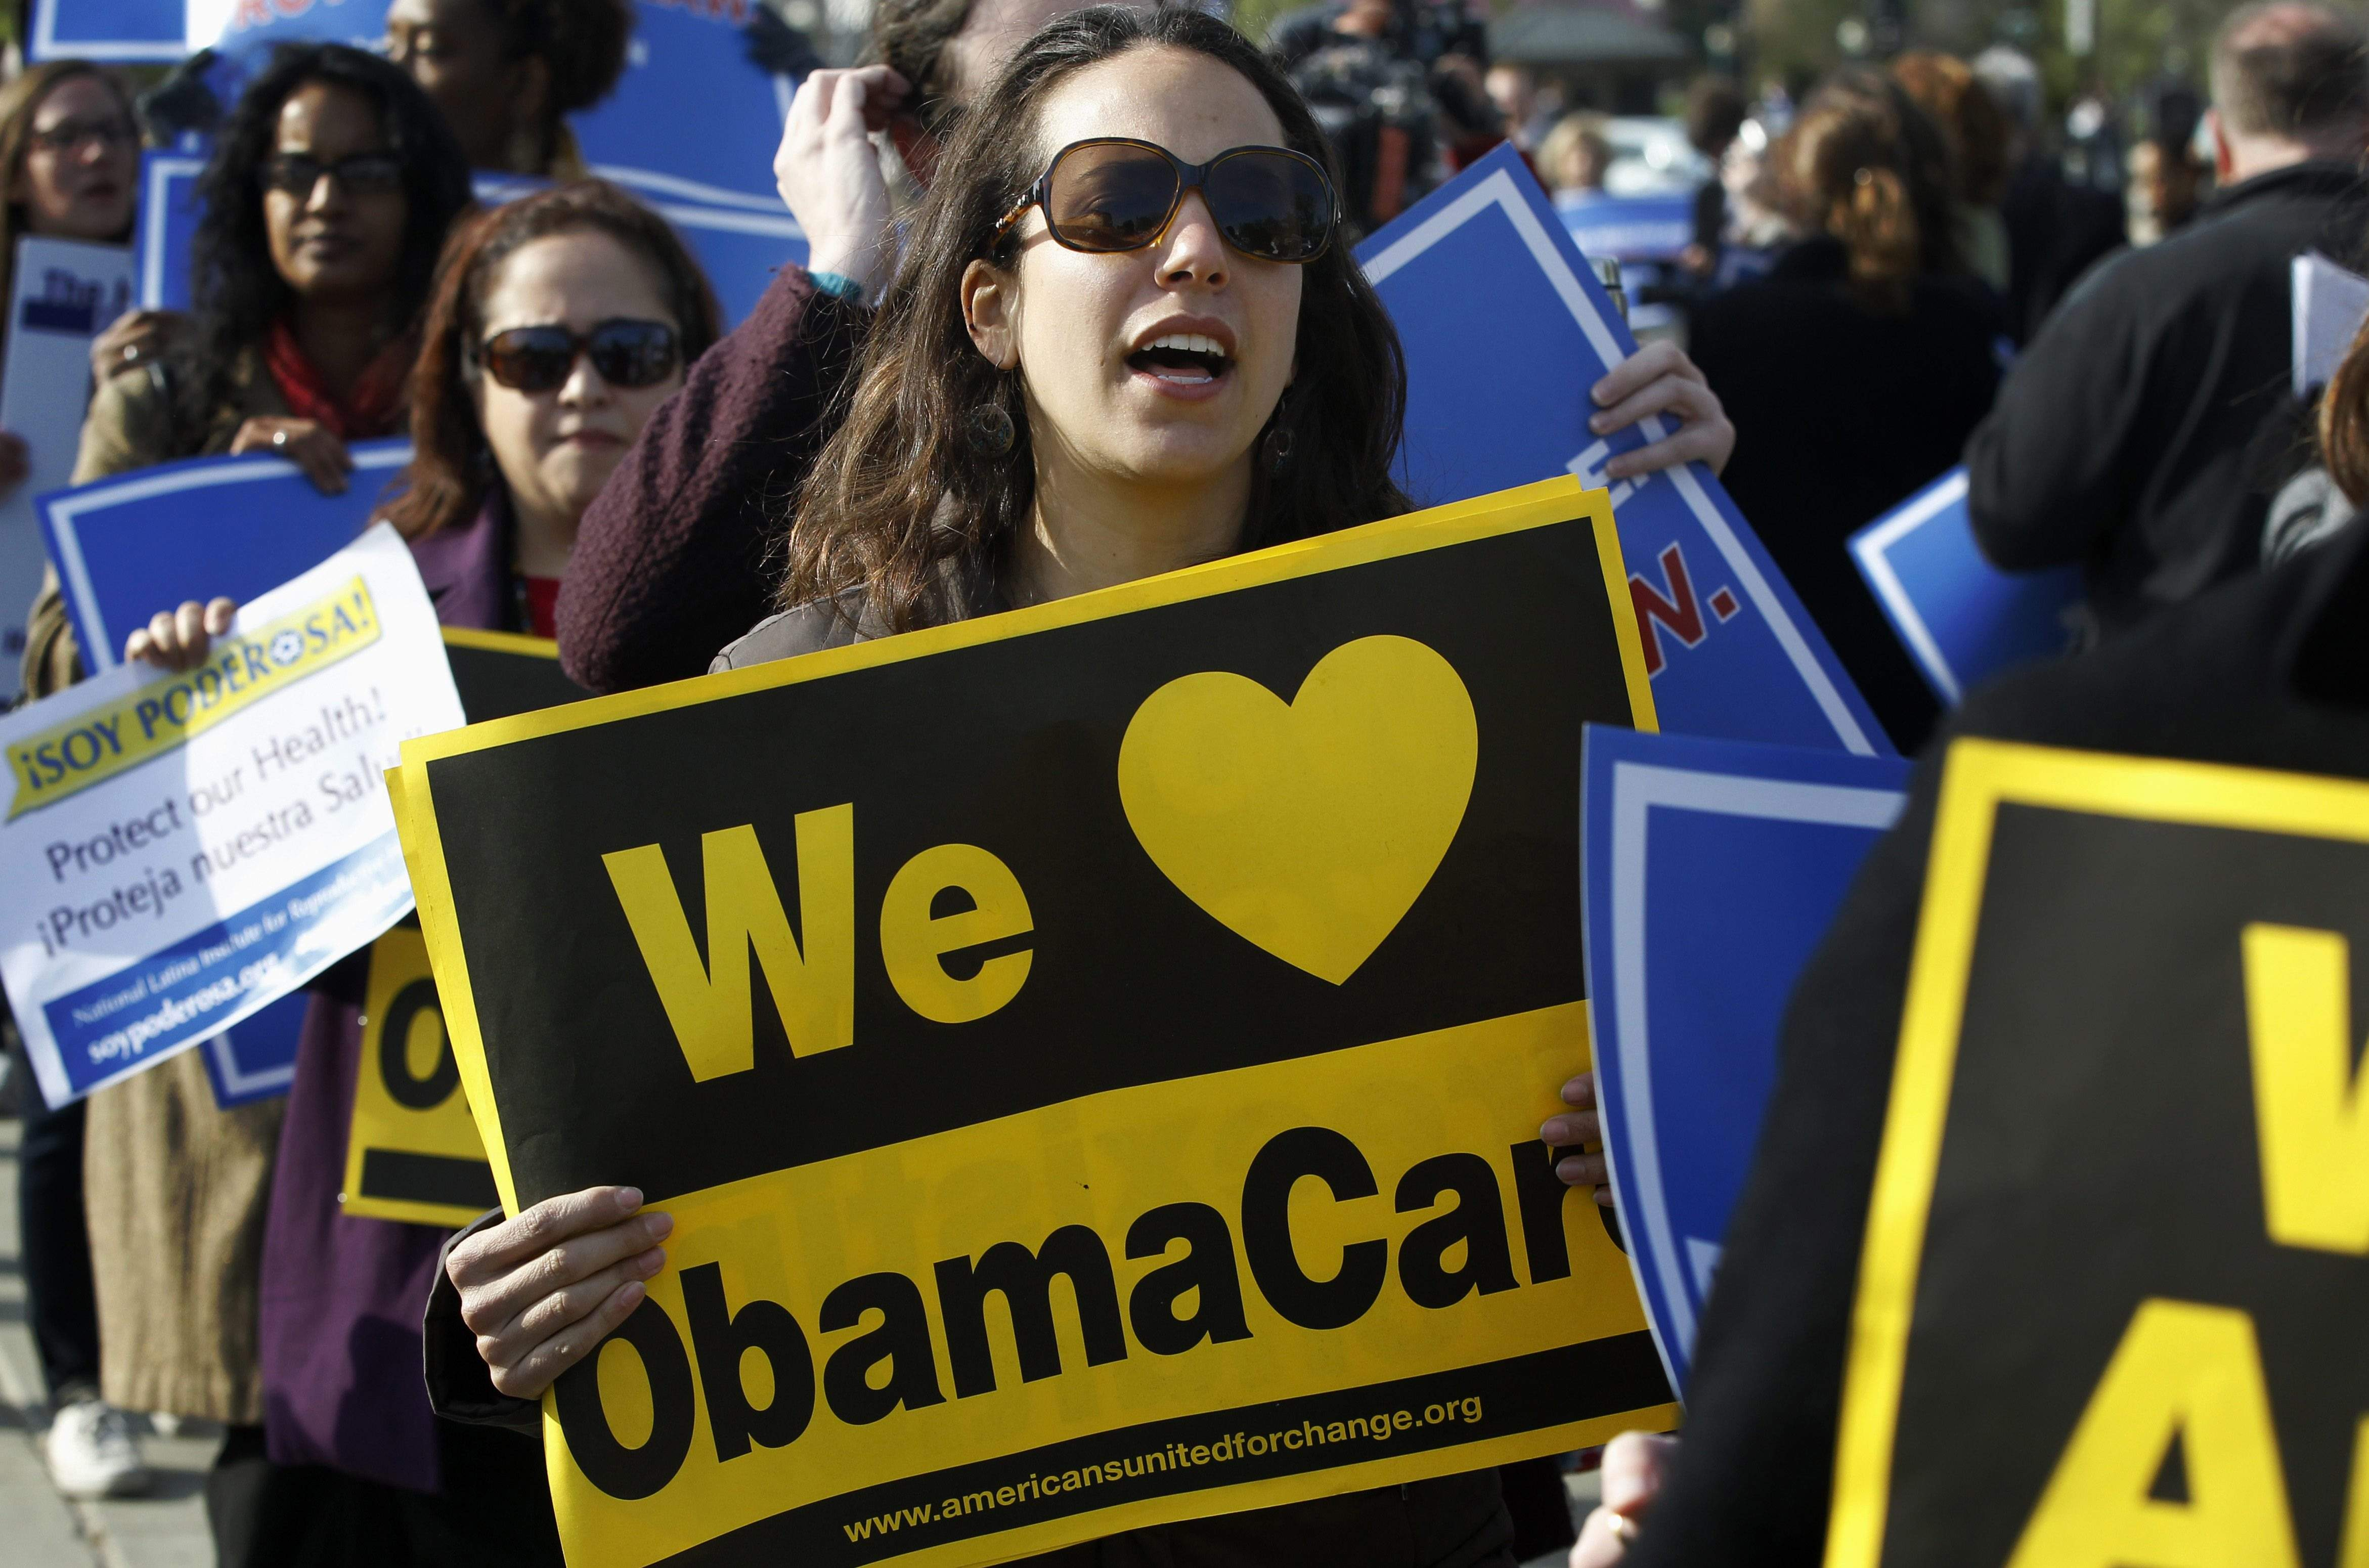 Supporters of the Affordable Care Act  stood in front of the Supreme Court in Washington on Wednesday, the final day of arguments regarding the health-care law signed by President Obama. The justices are reviewing the constitutionality of the 2,700-page law.  CHARLES DHARAPAK / Associated Press